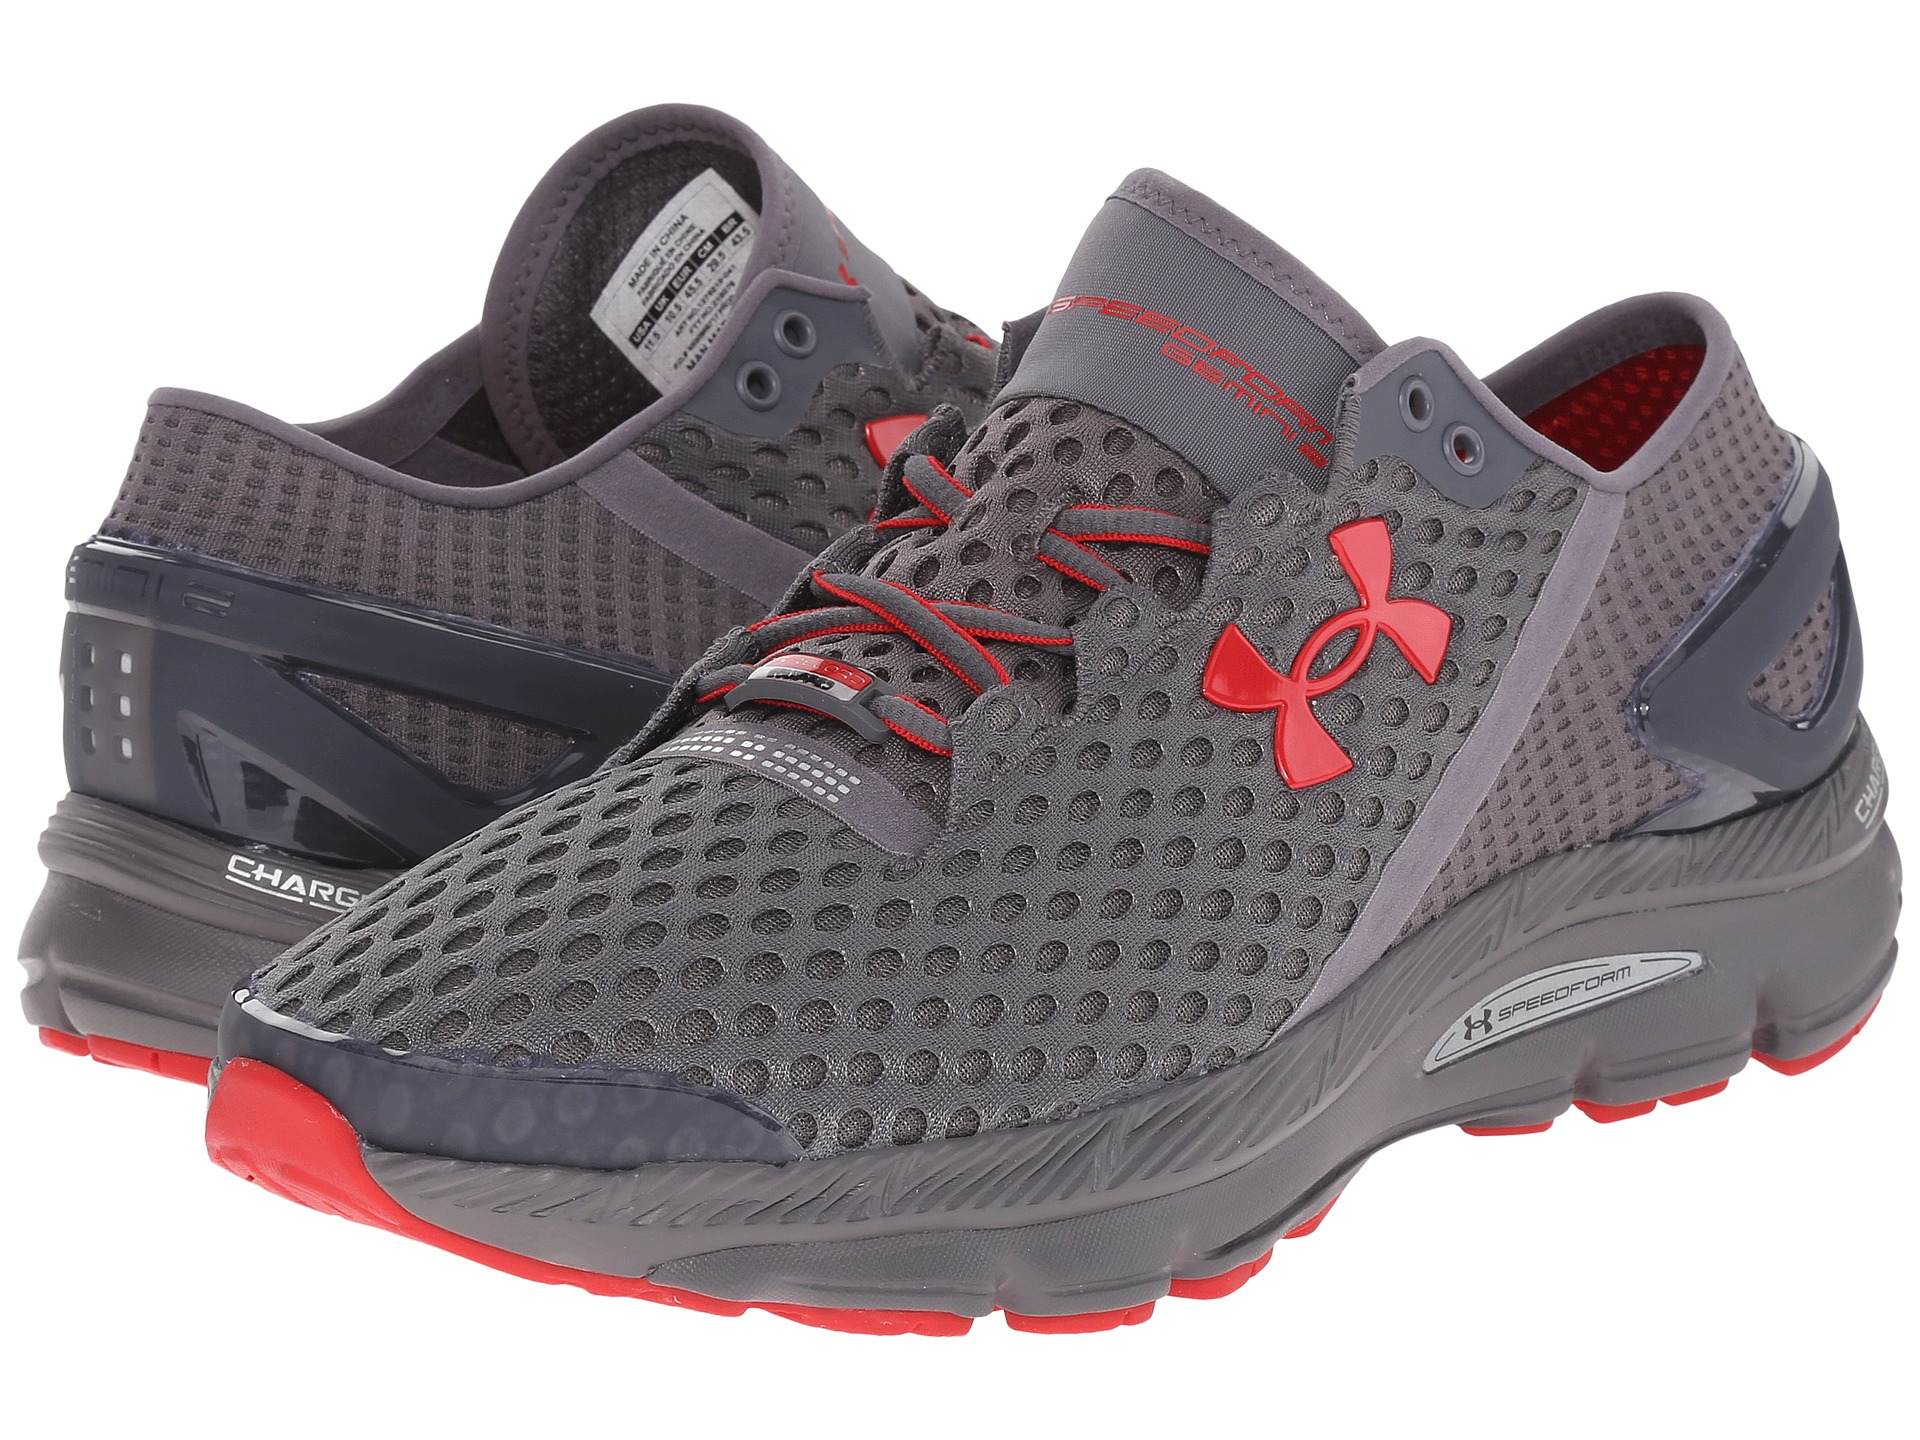 new product 506aa 6b886 under armour speedform gemini 2 mens running shoes| DS Hair ...